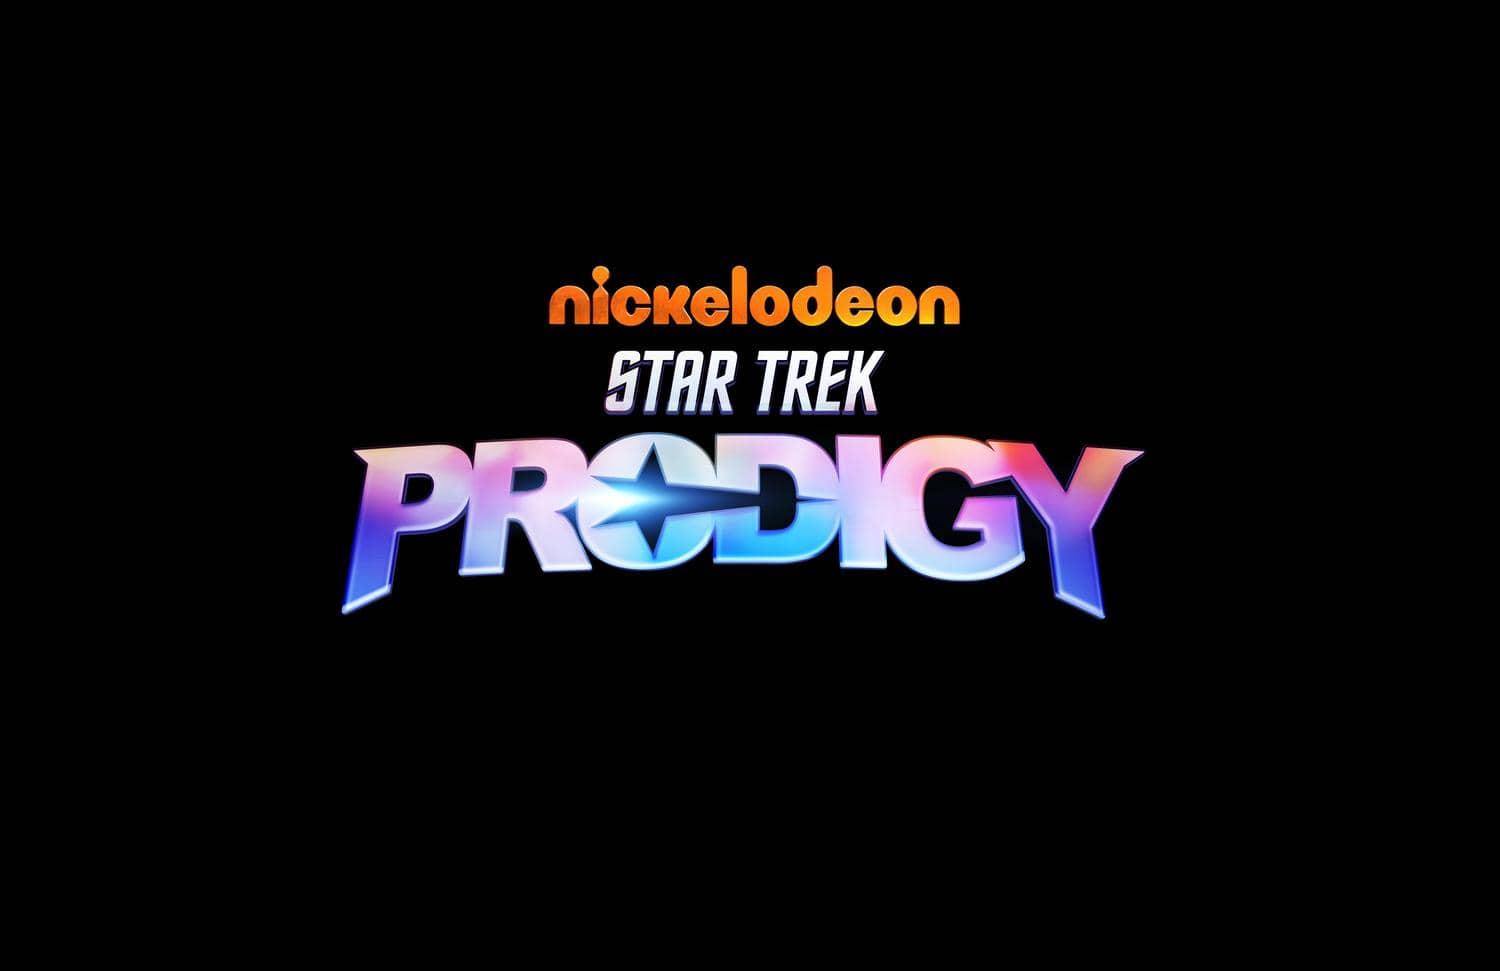 Star Trek: Prodigy Casts The Voice of the Two Main Villains